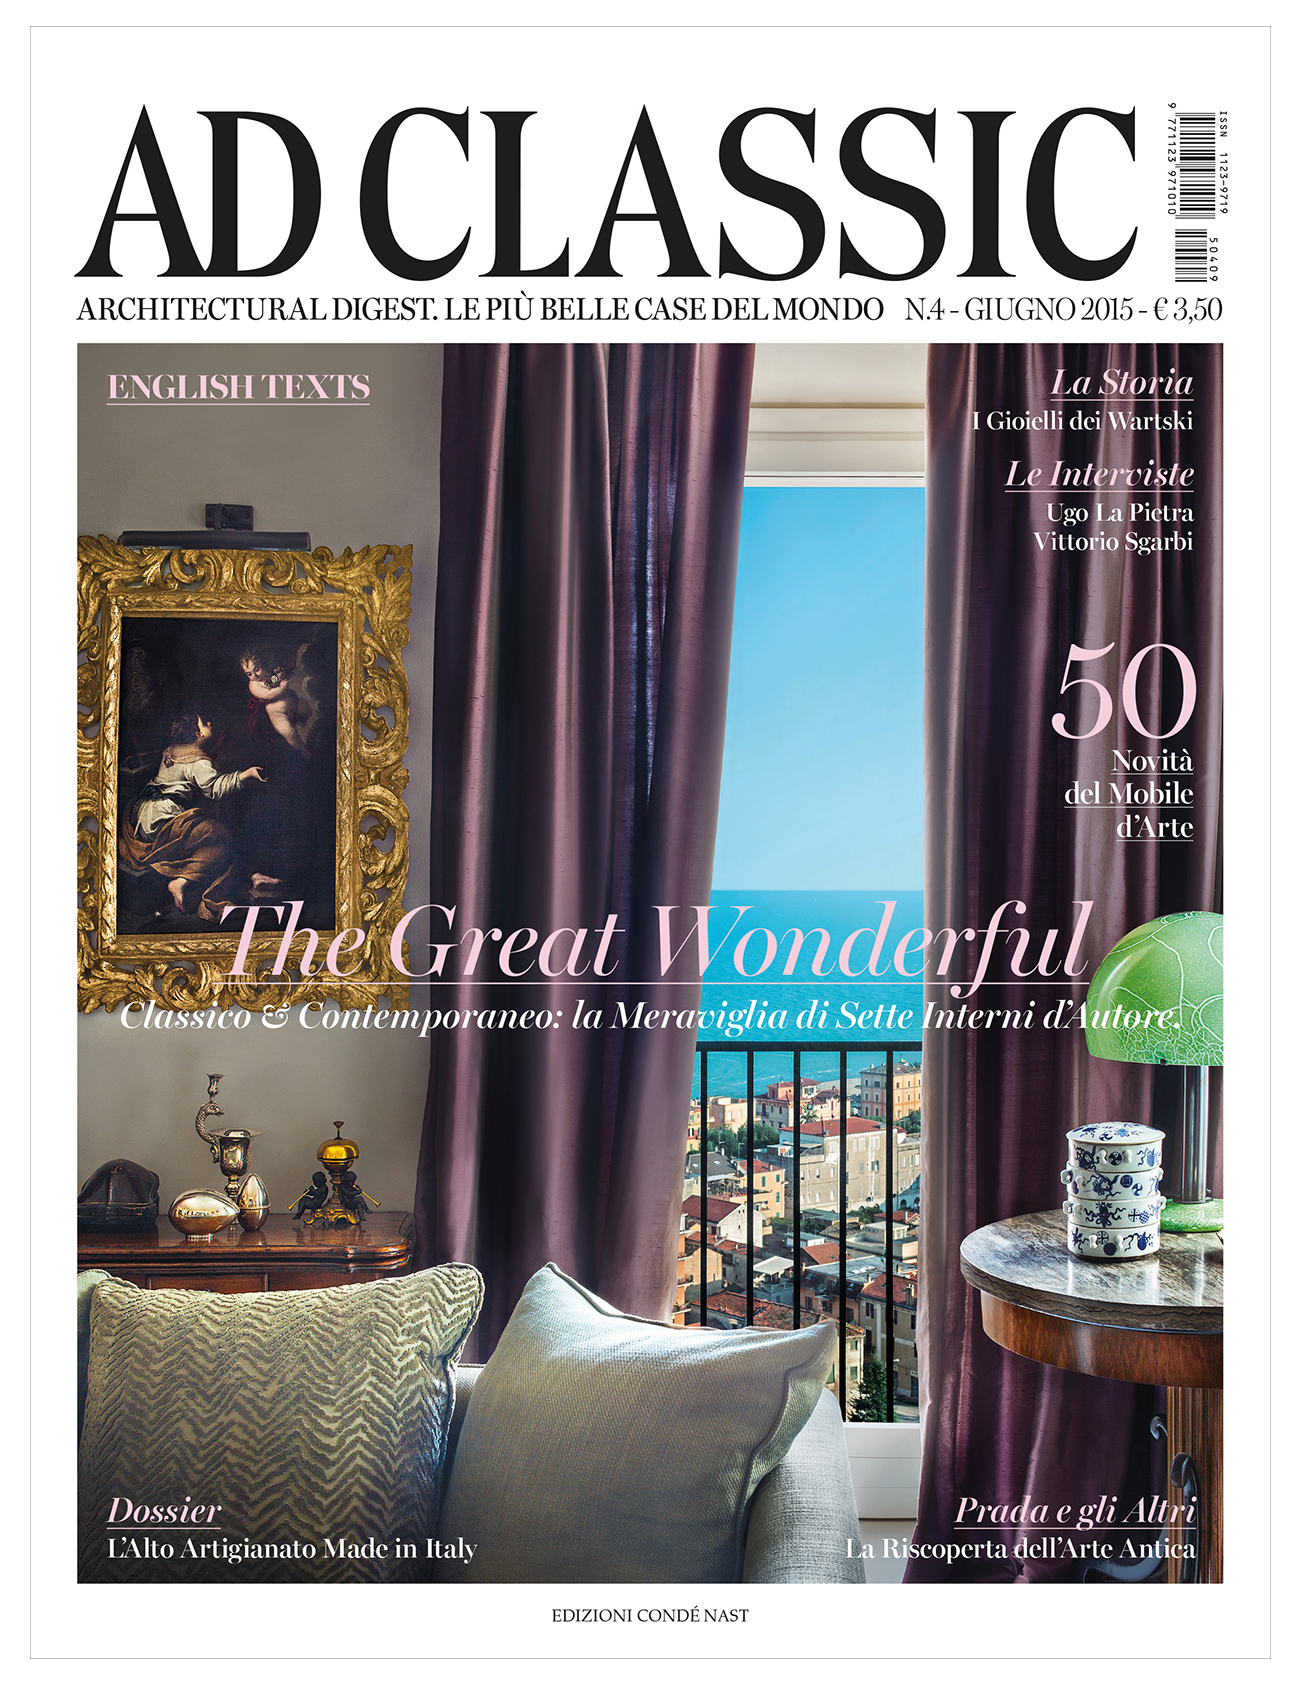 ADClassic_cover_2015 copia.jpg